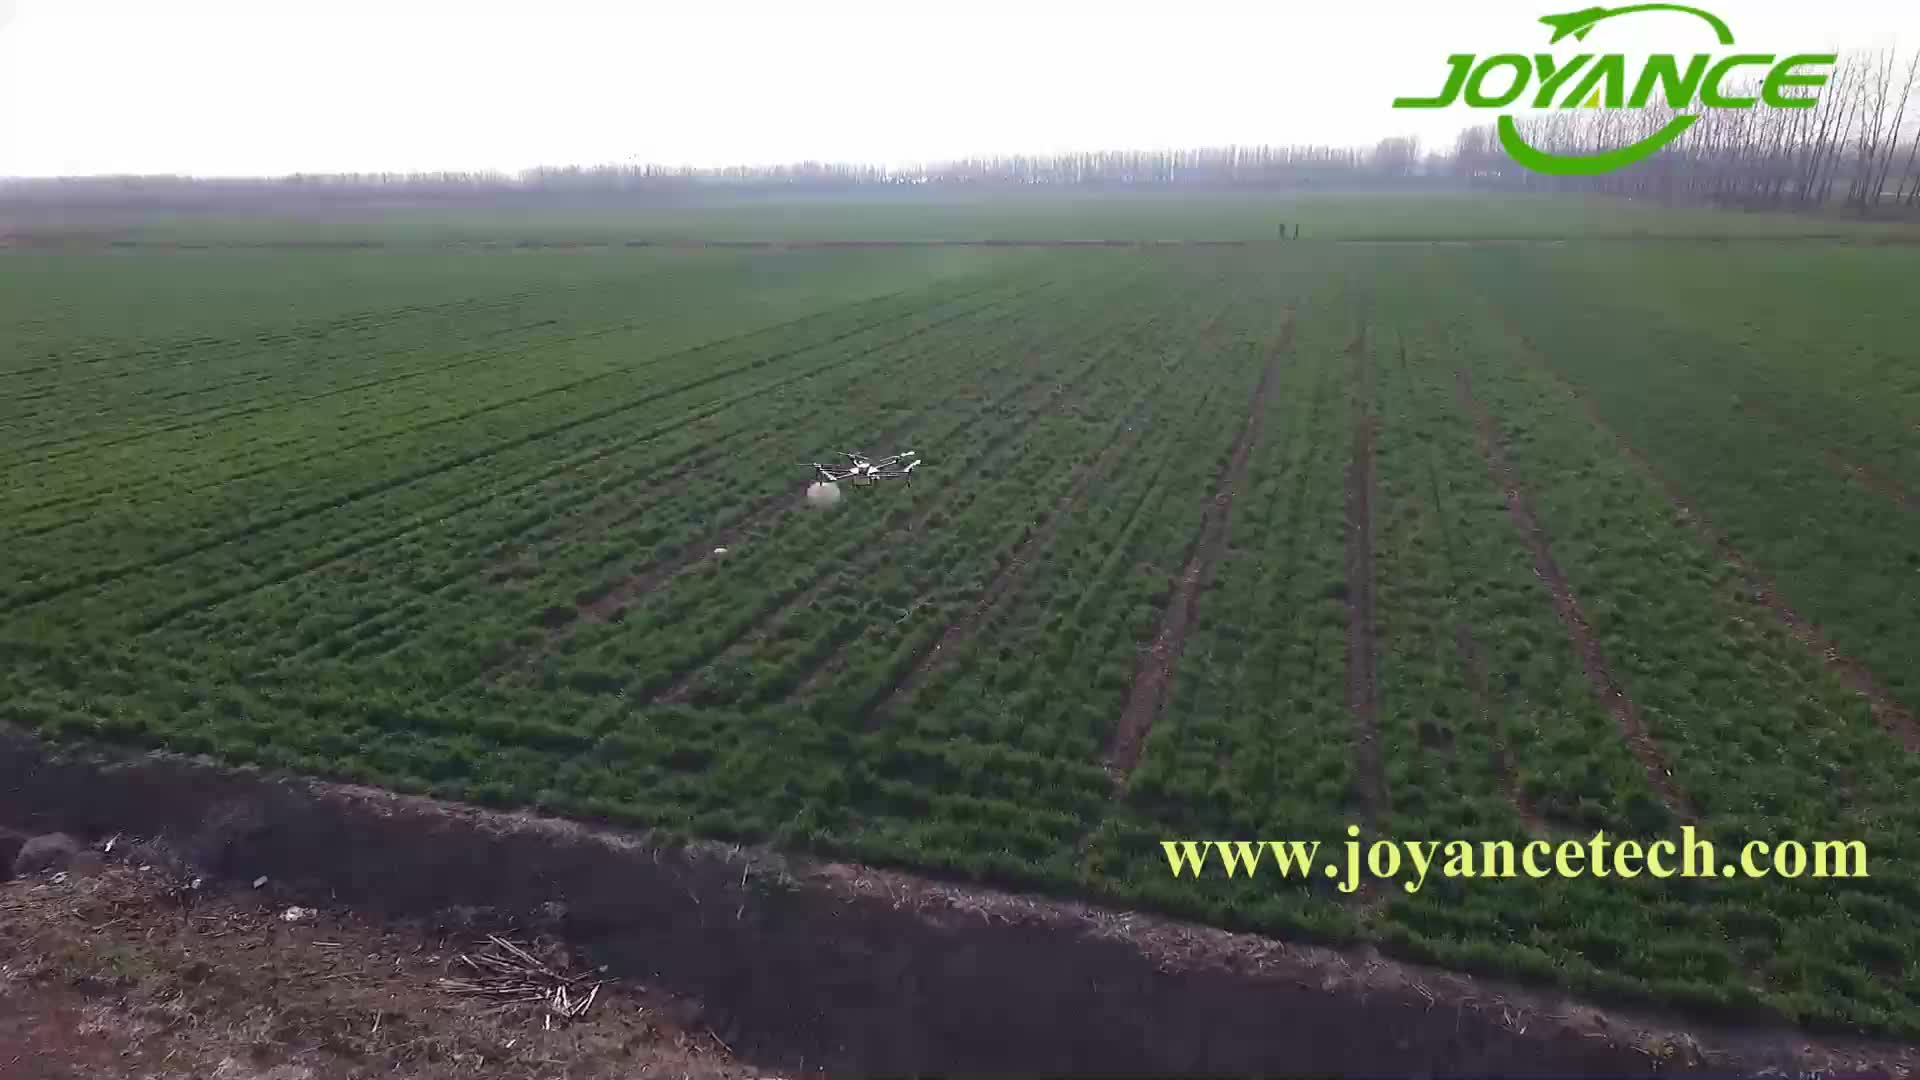 Joyance 15kg payload fumigation drone remote control sprayer drone agriculture sprayer